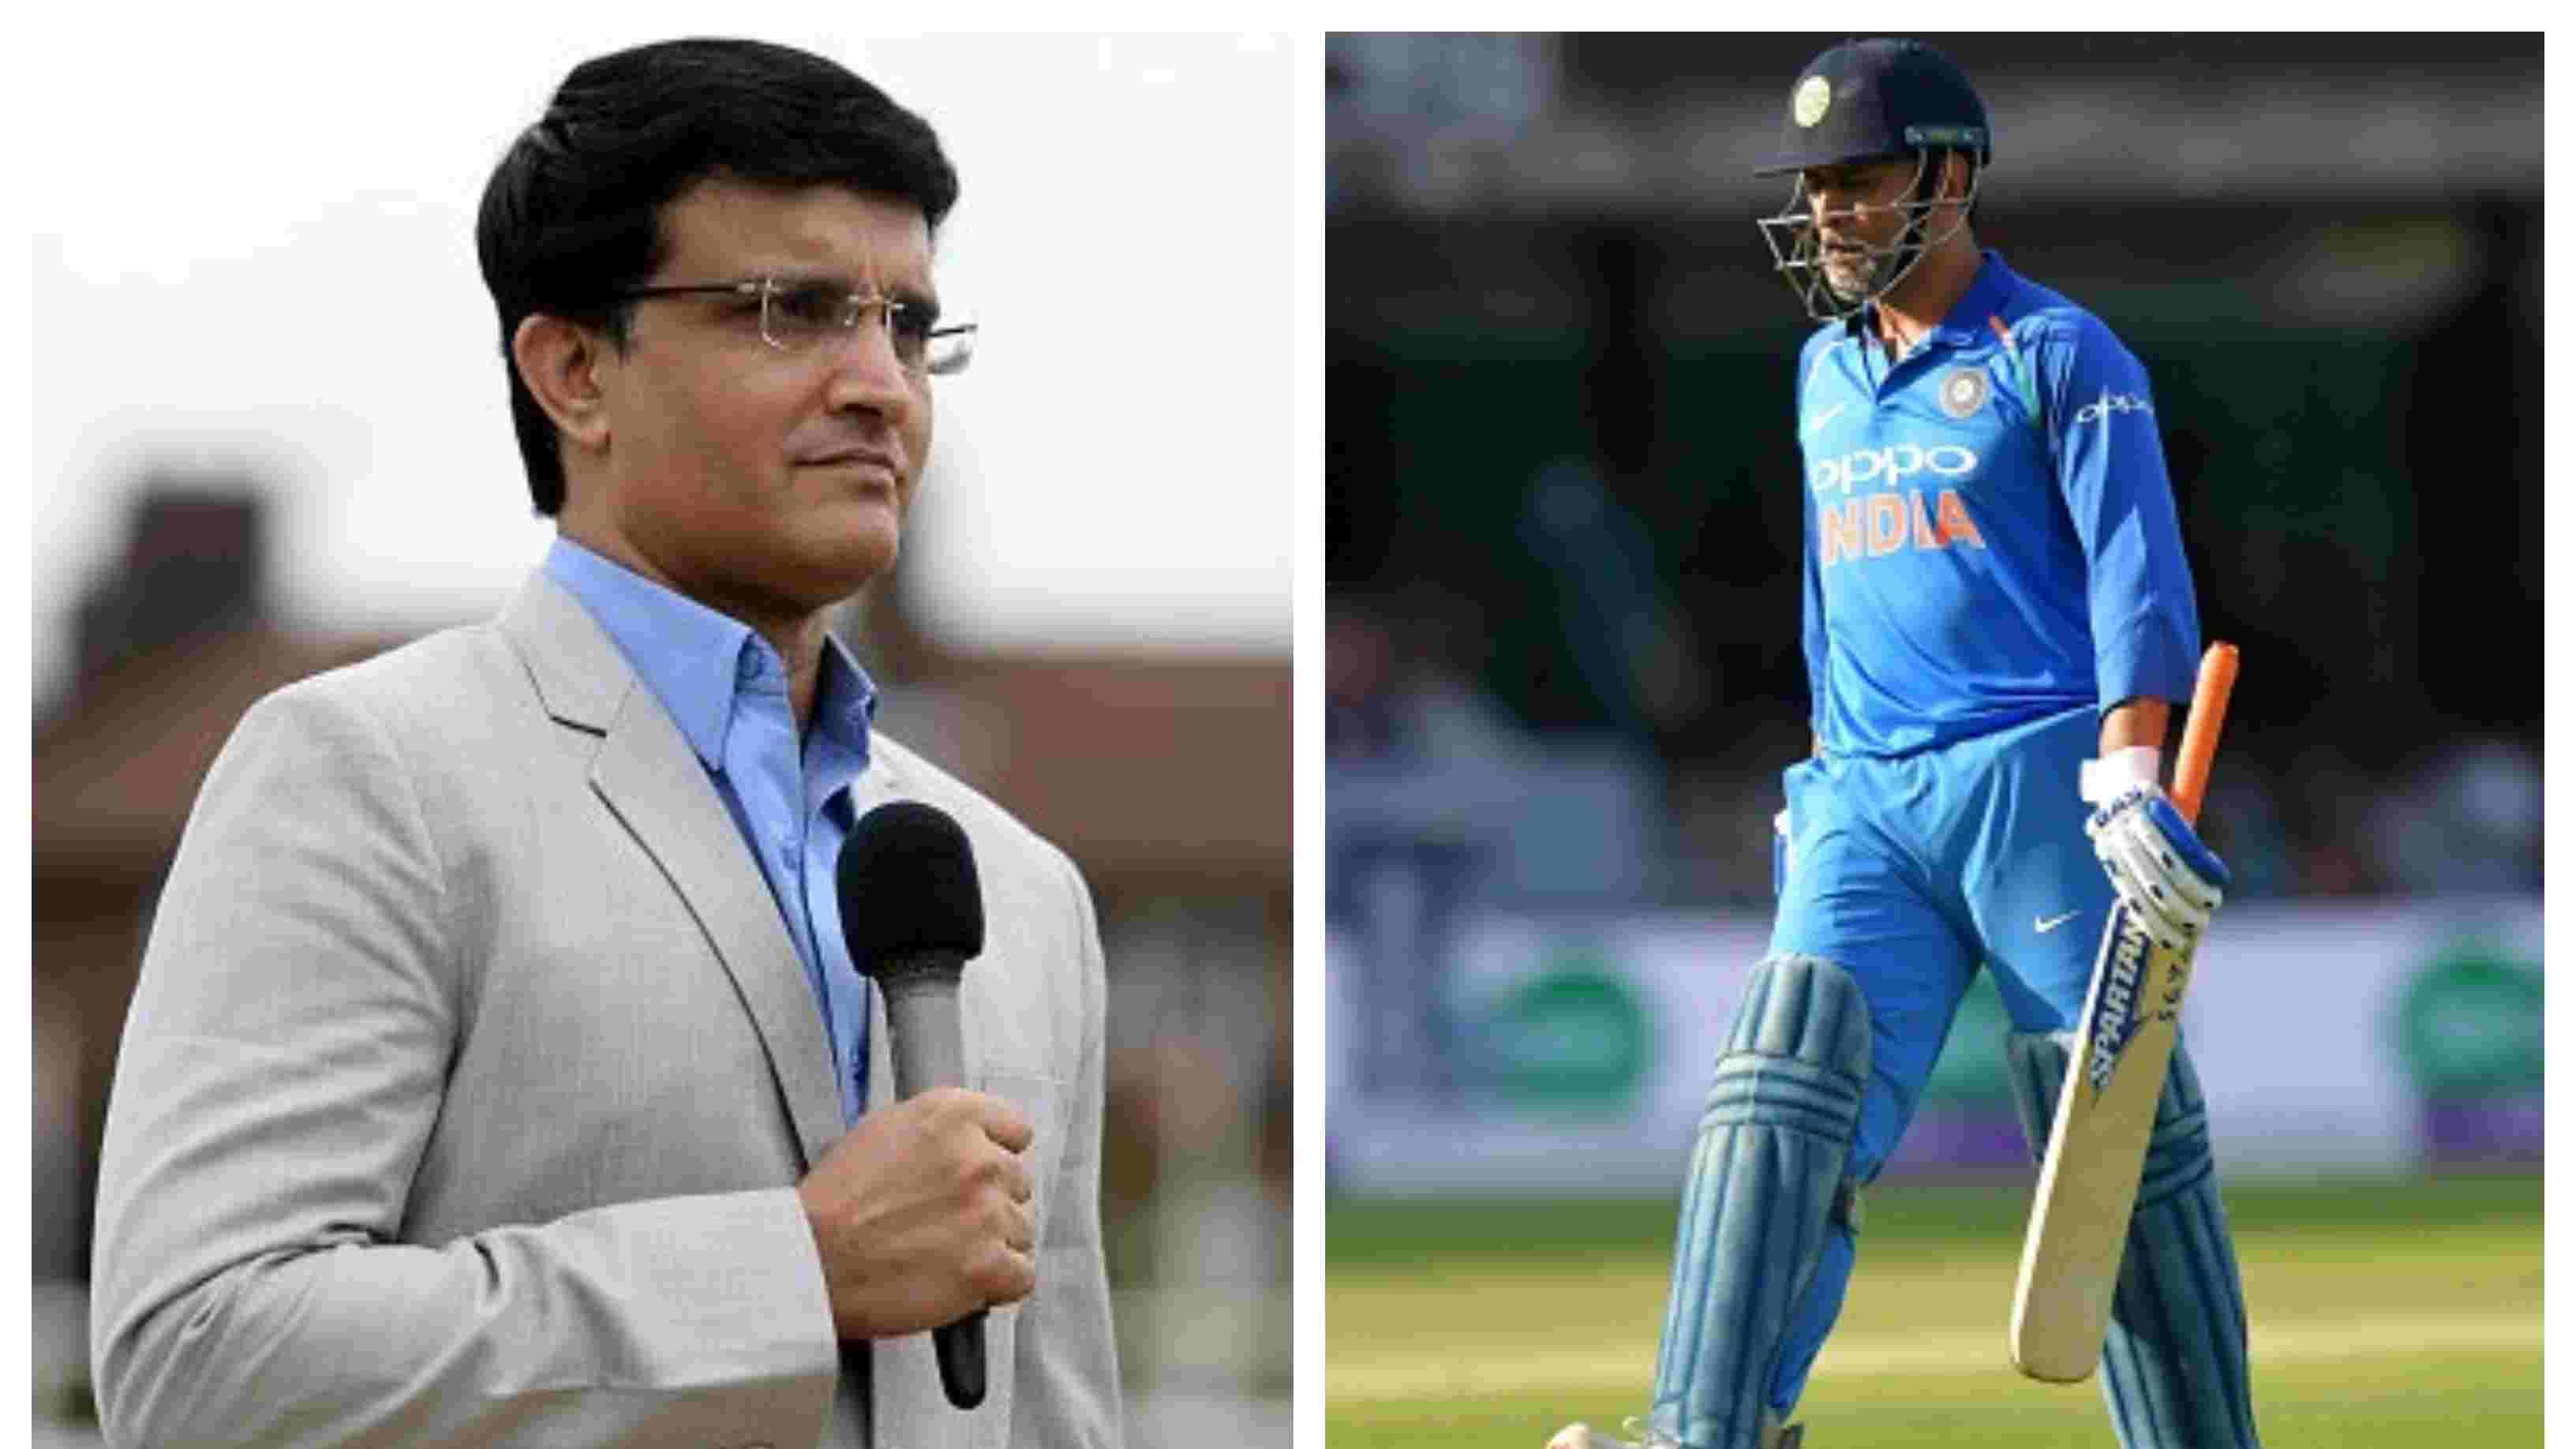 ASIA CUP 2018: MS Dhoni needs to perform to retain his place in the ODI side, says Sourav Ganguly